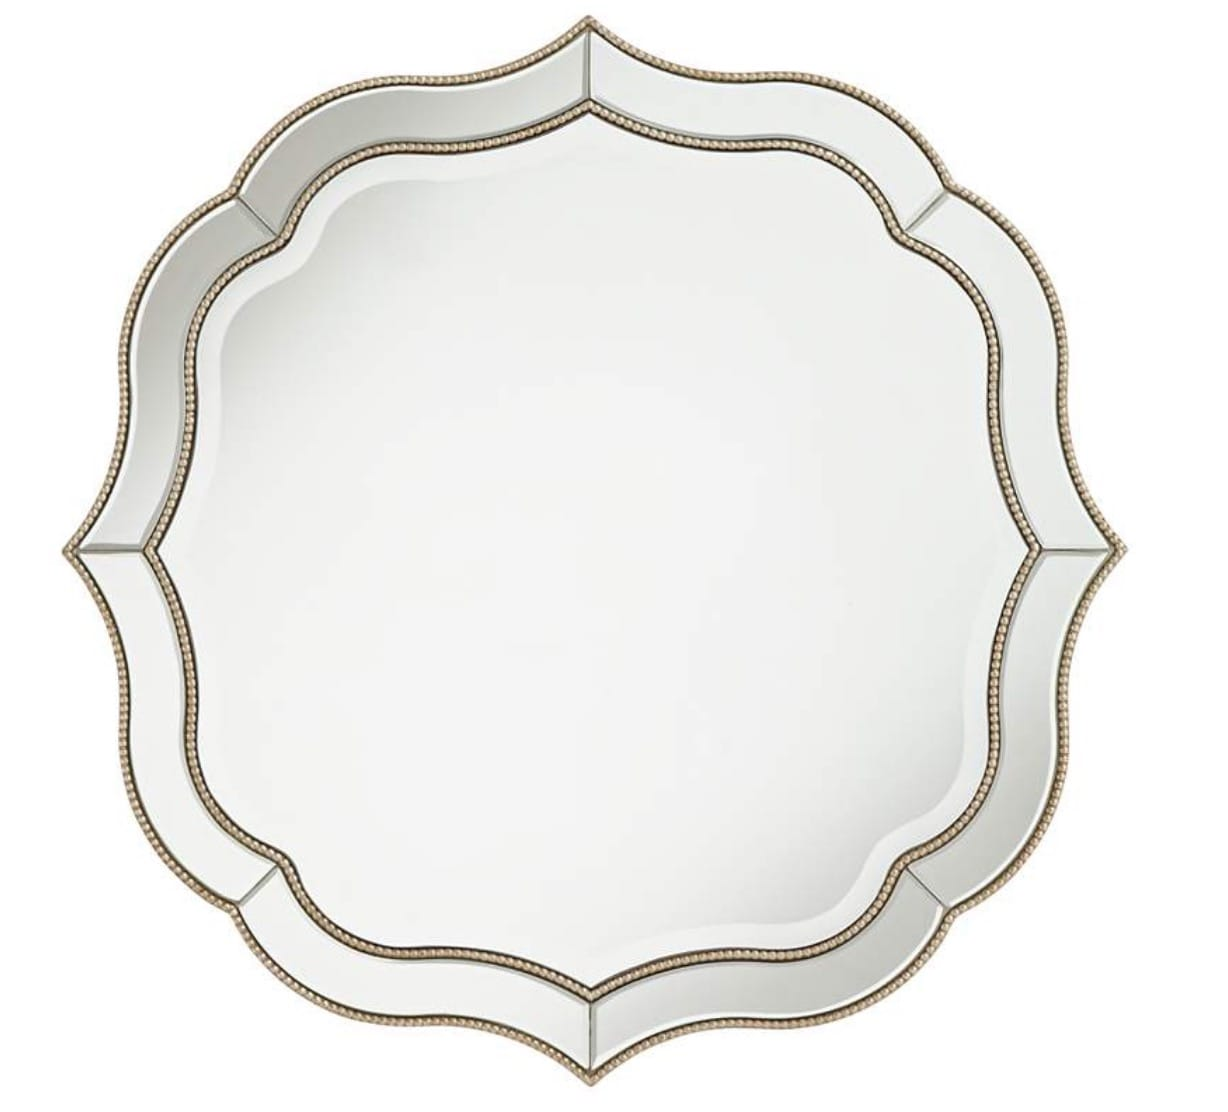 Laureen Champagne 32 Scalloped Round Wall Mirror